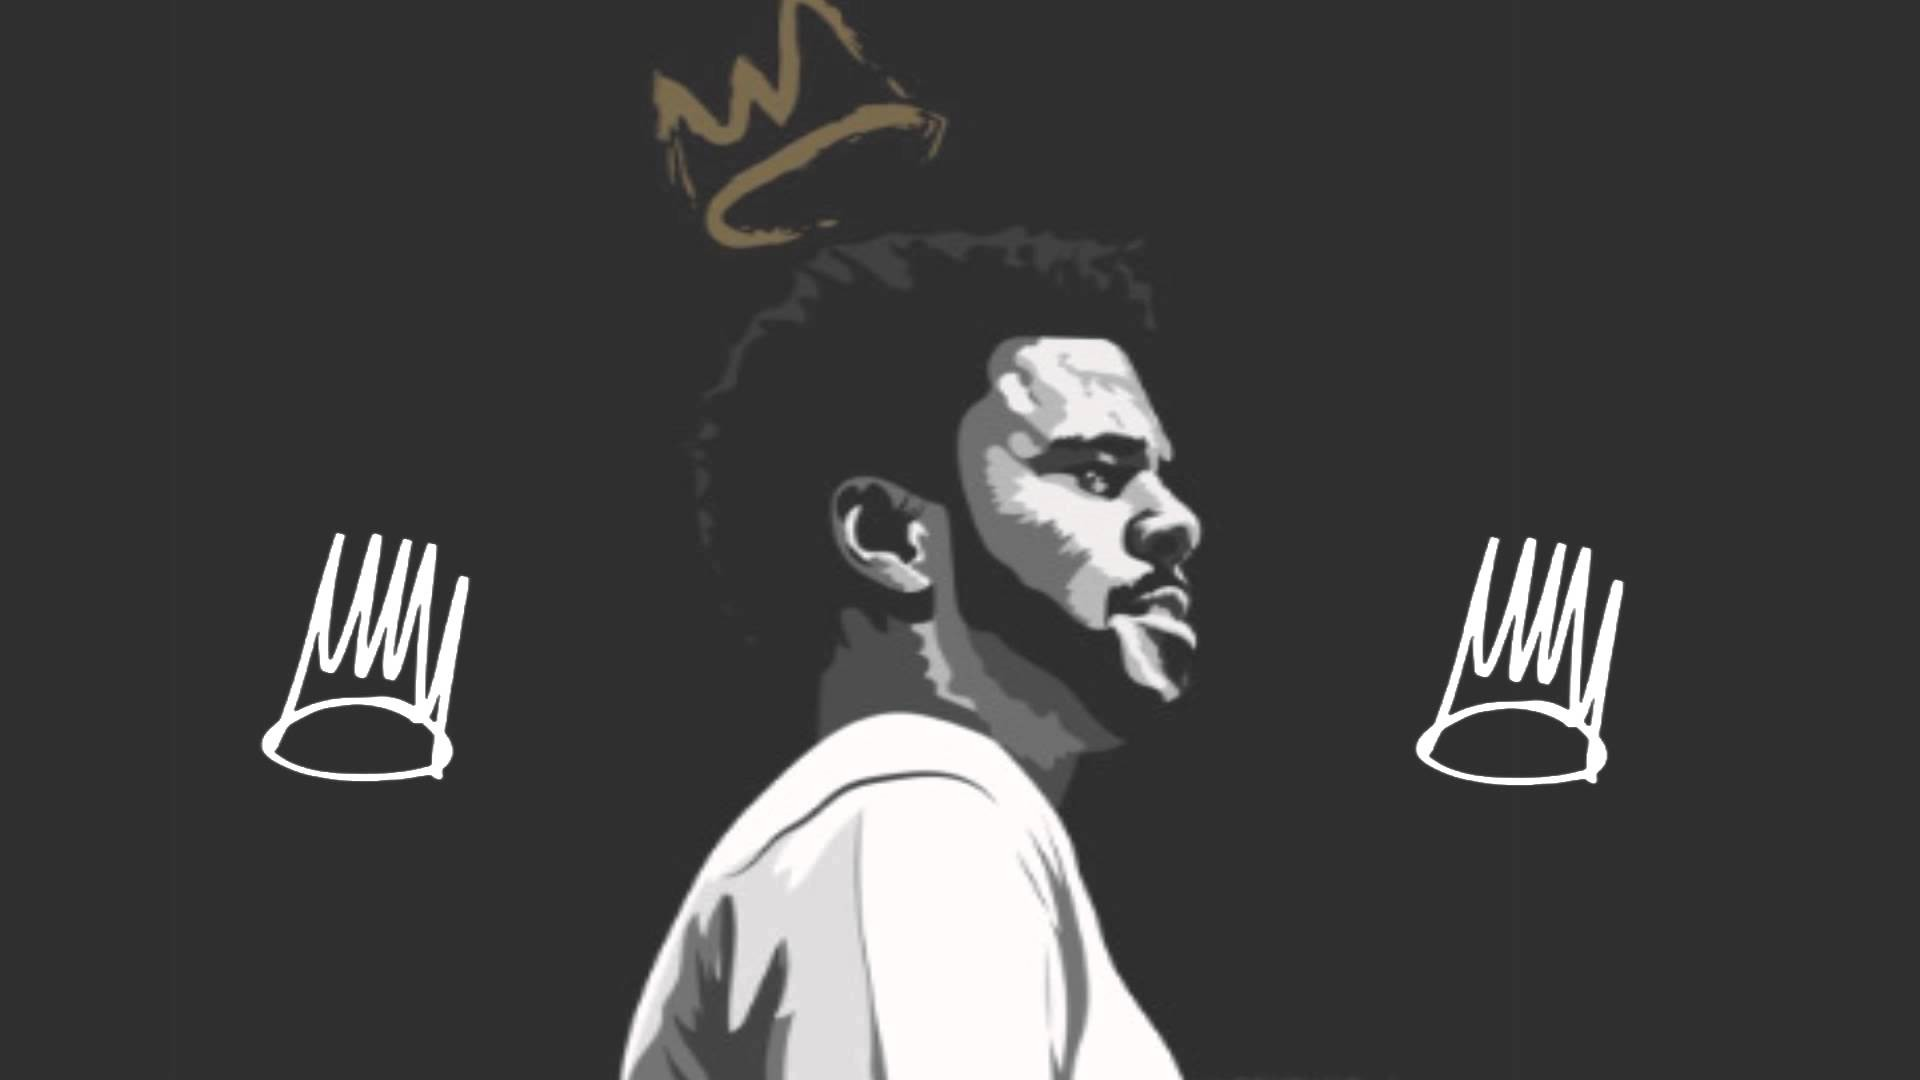 Beautiful Wallpaper Mac J Cole - 130929-most-popular-j-cole-wallpaper-1920x1080-mobile  Gallery_202955.jpg